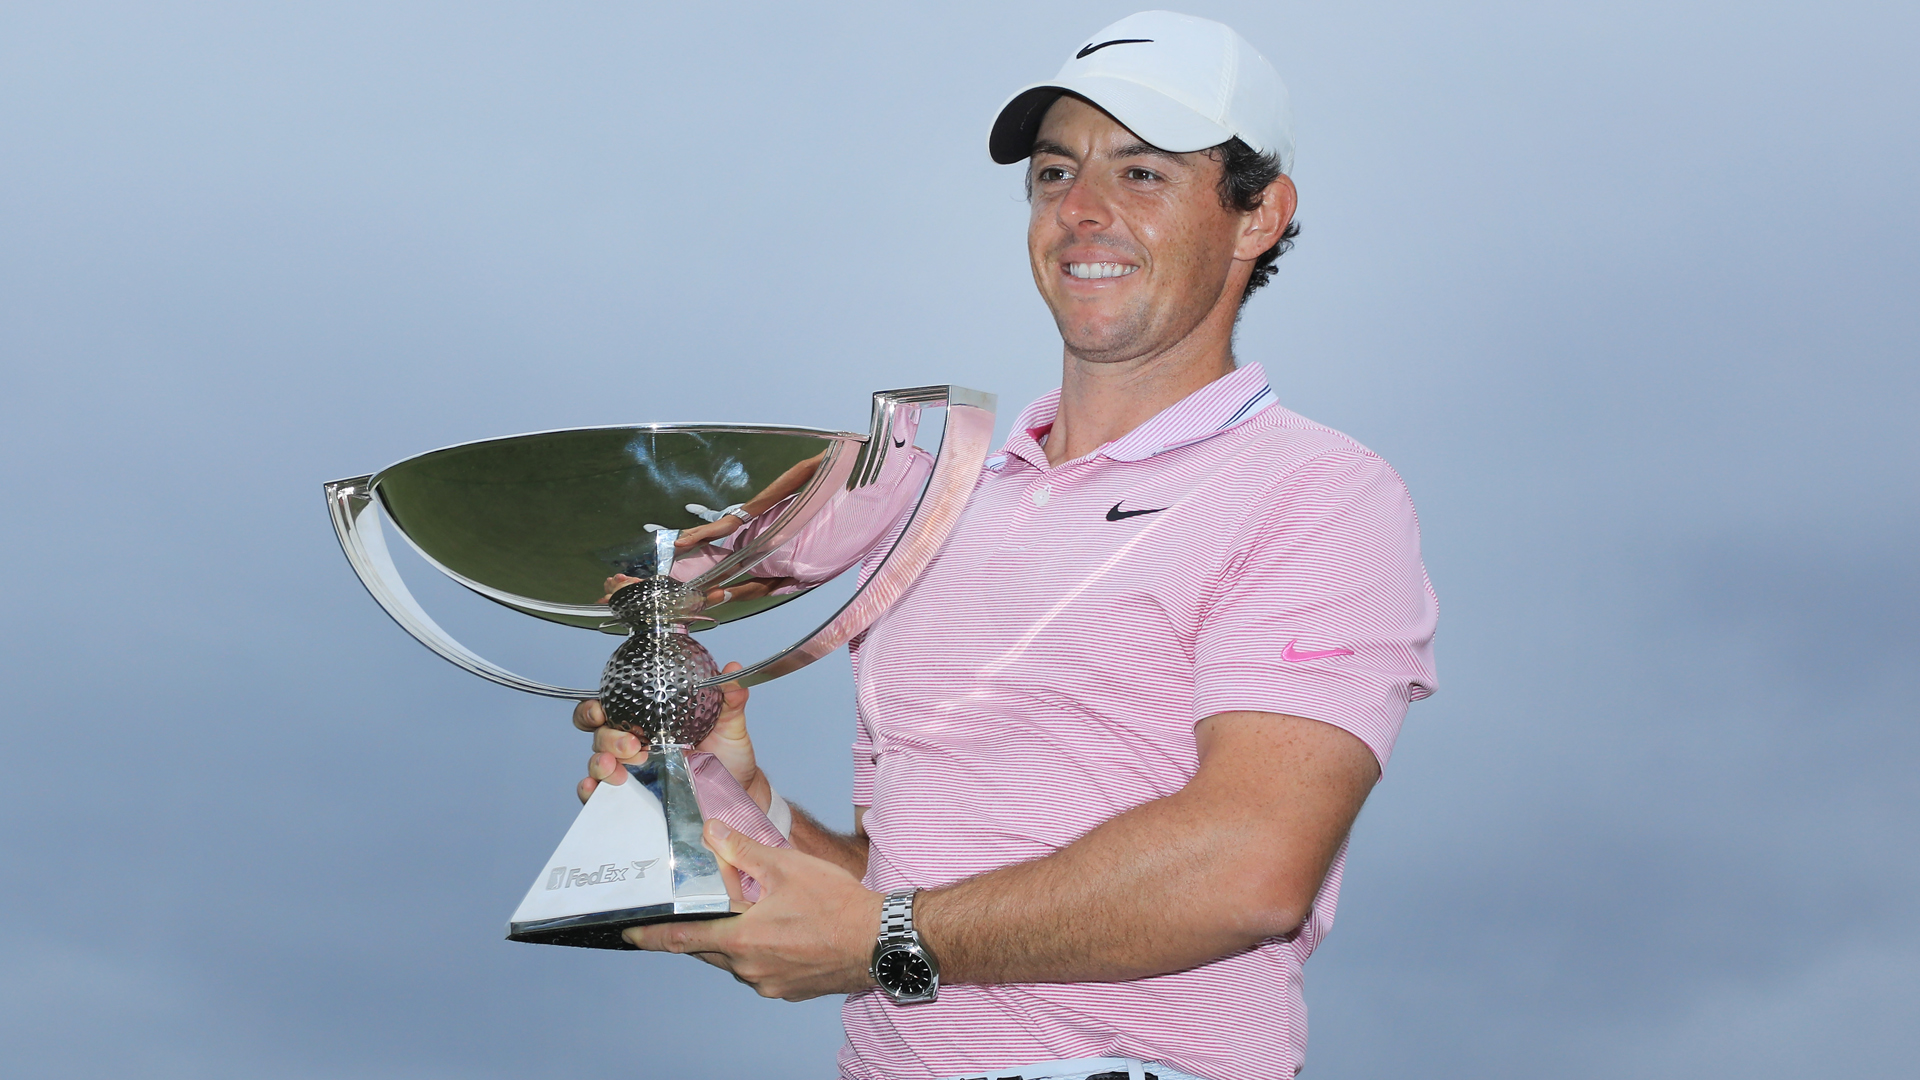 Tour Championship 2019: Rory McIlroy reflects on 2nd FedEx Cup title, Tiger Woods and Brooks Koepka